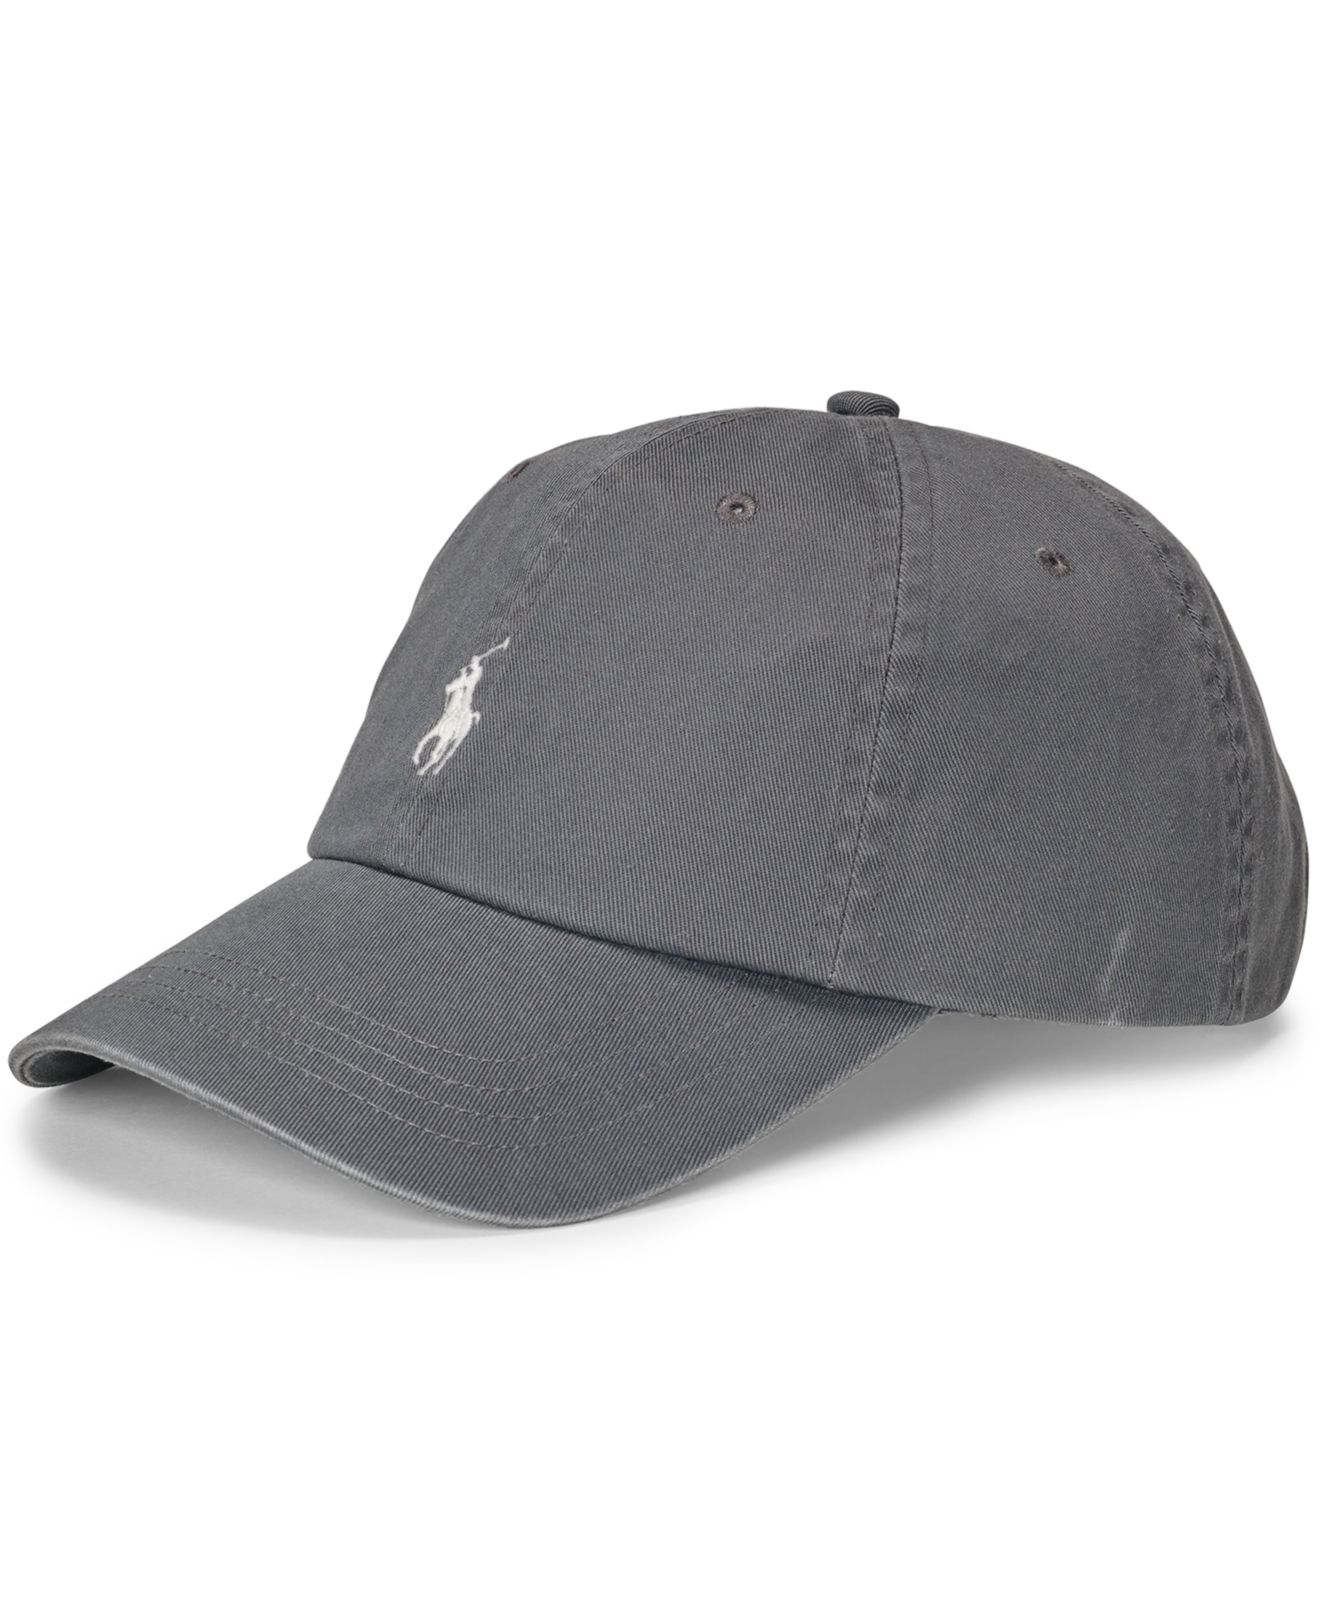 polo ralph lauren classic chino sports cap in gray for men. Black Bedroom Furniture Sets. Home Design Ideas